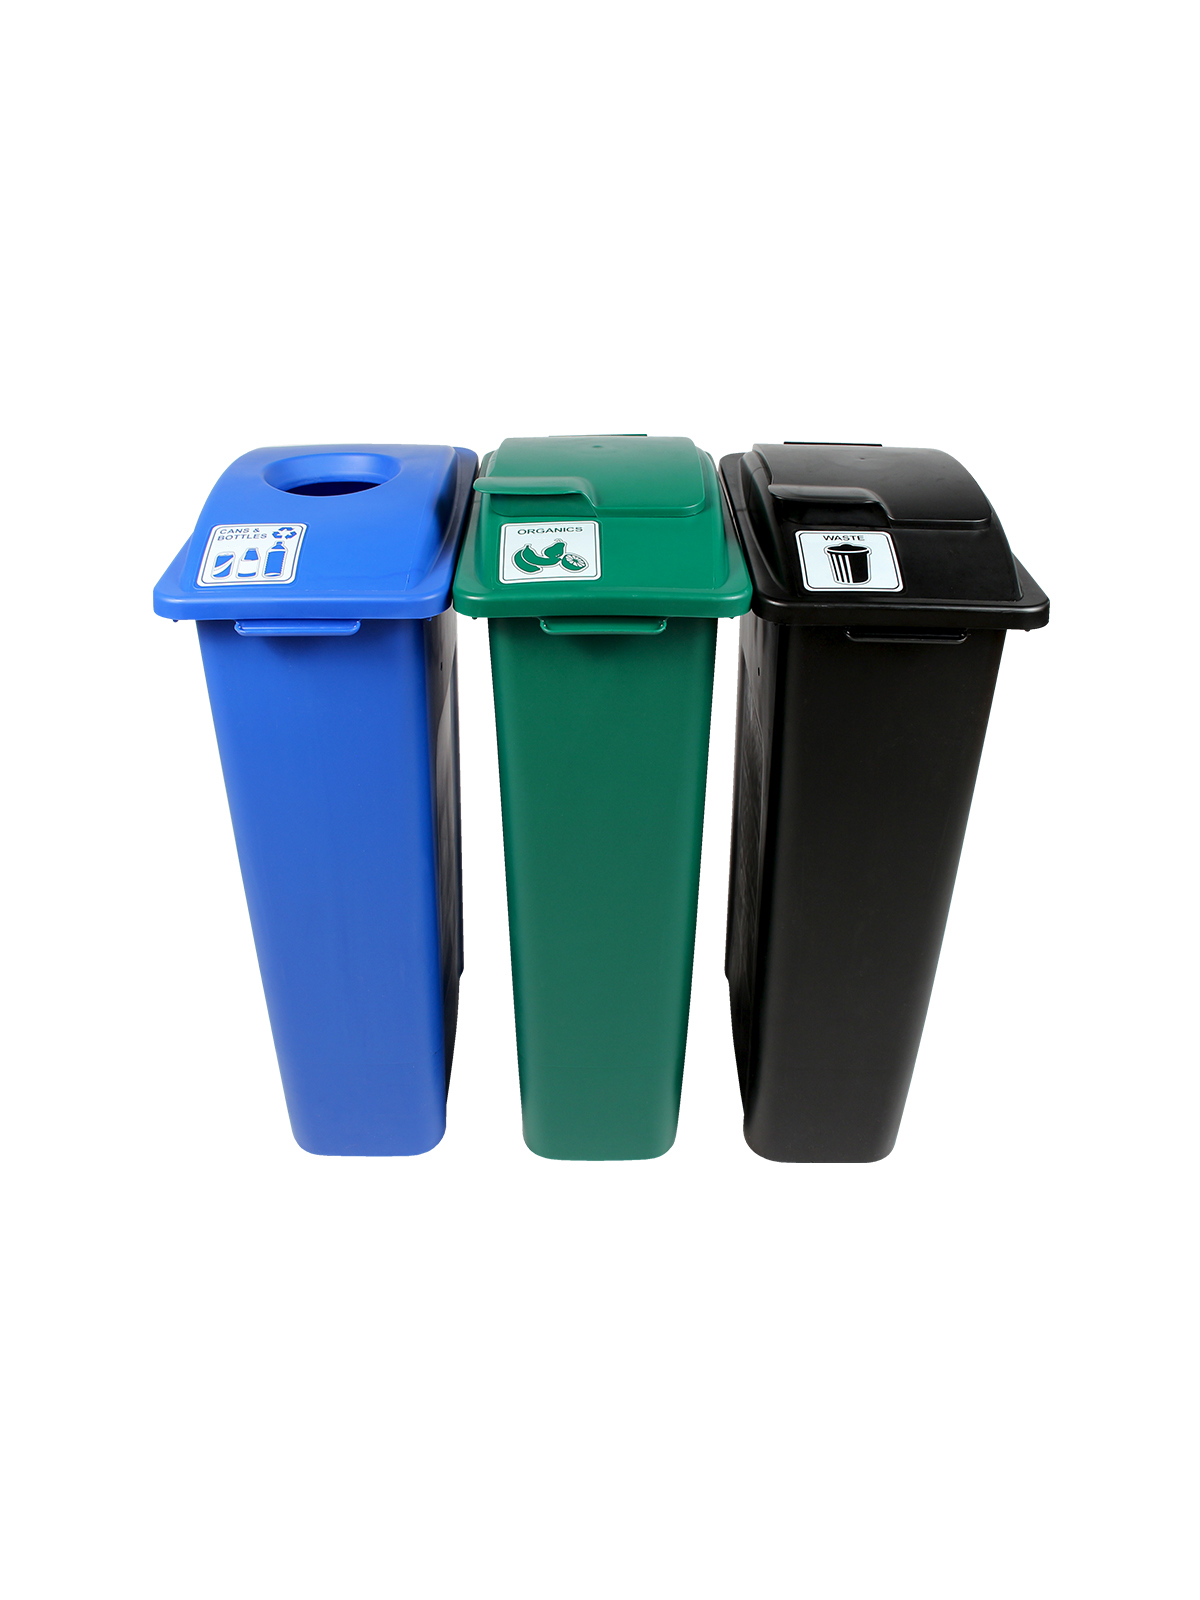 WASTE WATCHER - Triple - Cans & Bottles-Organics-Waste - Circle-Solid Lift-Solid Lift - Blue-Green-Black